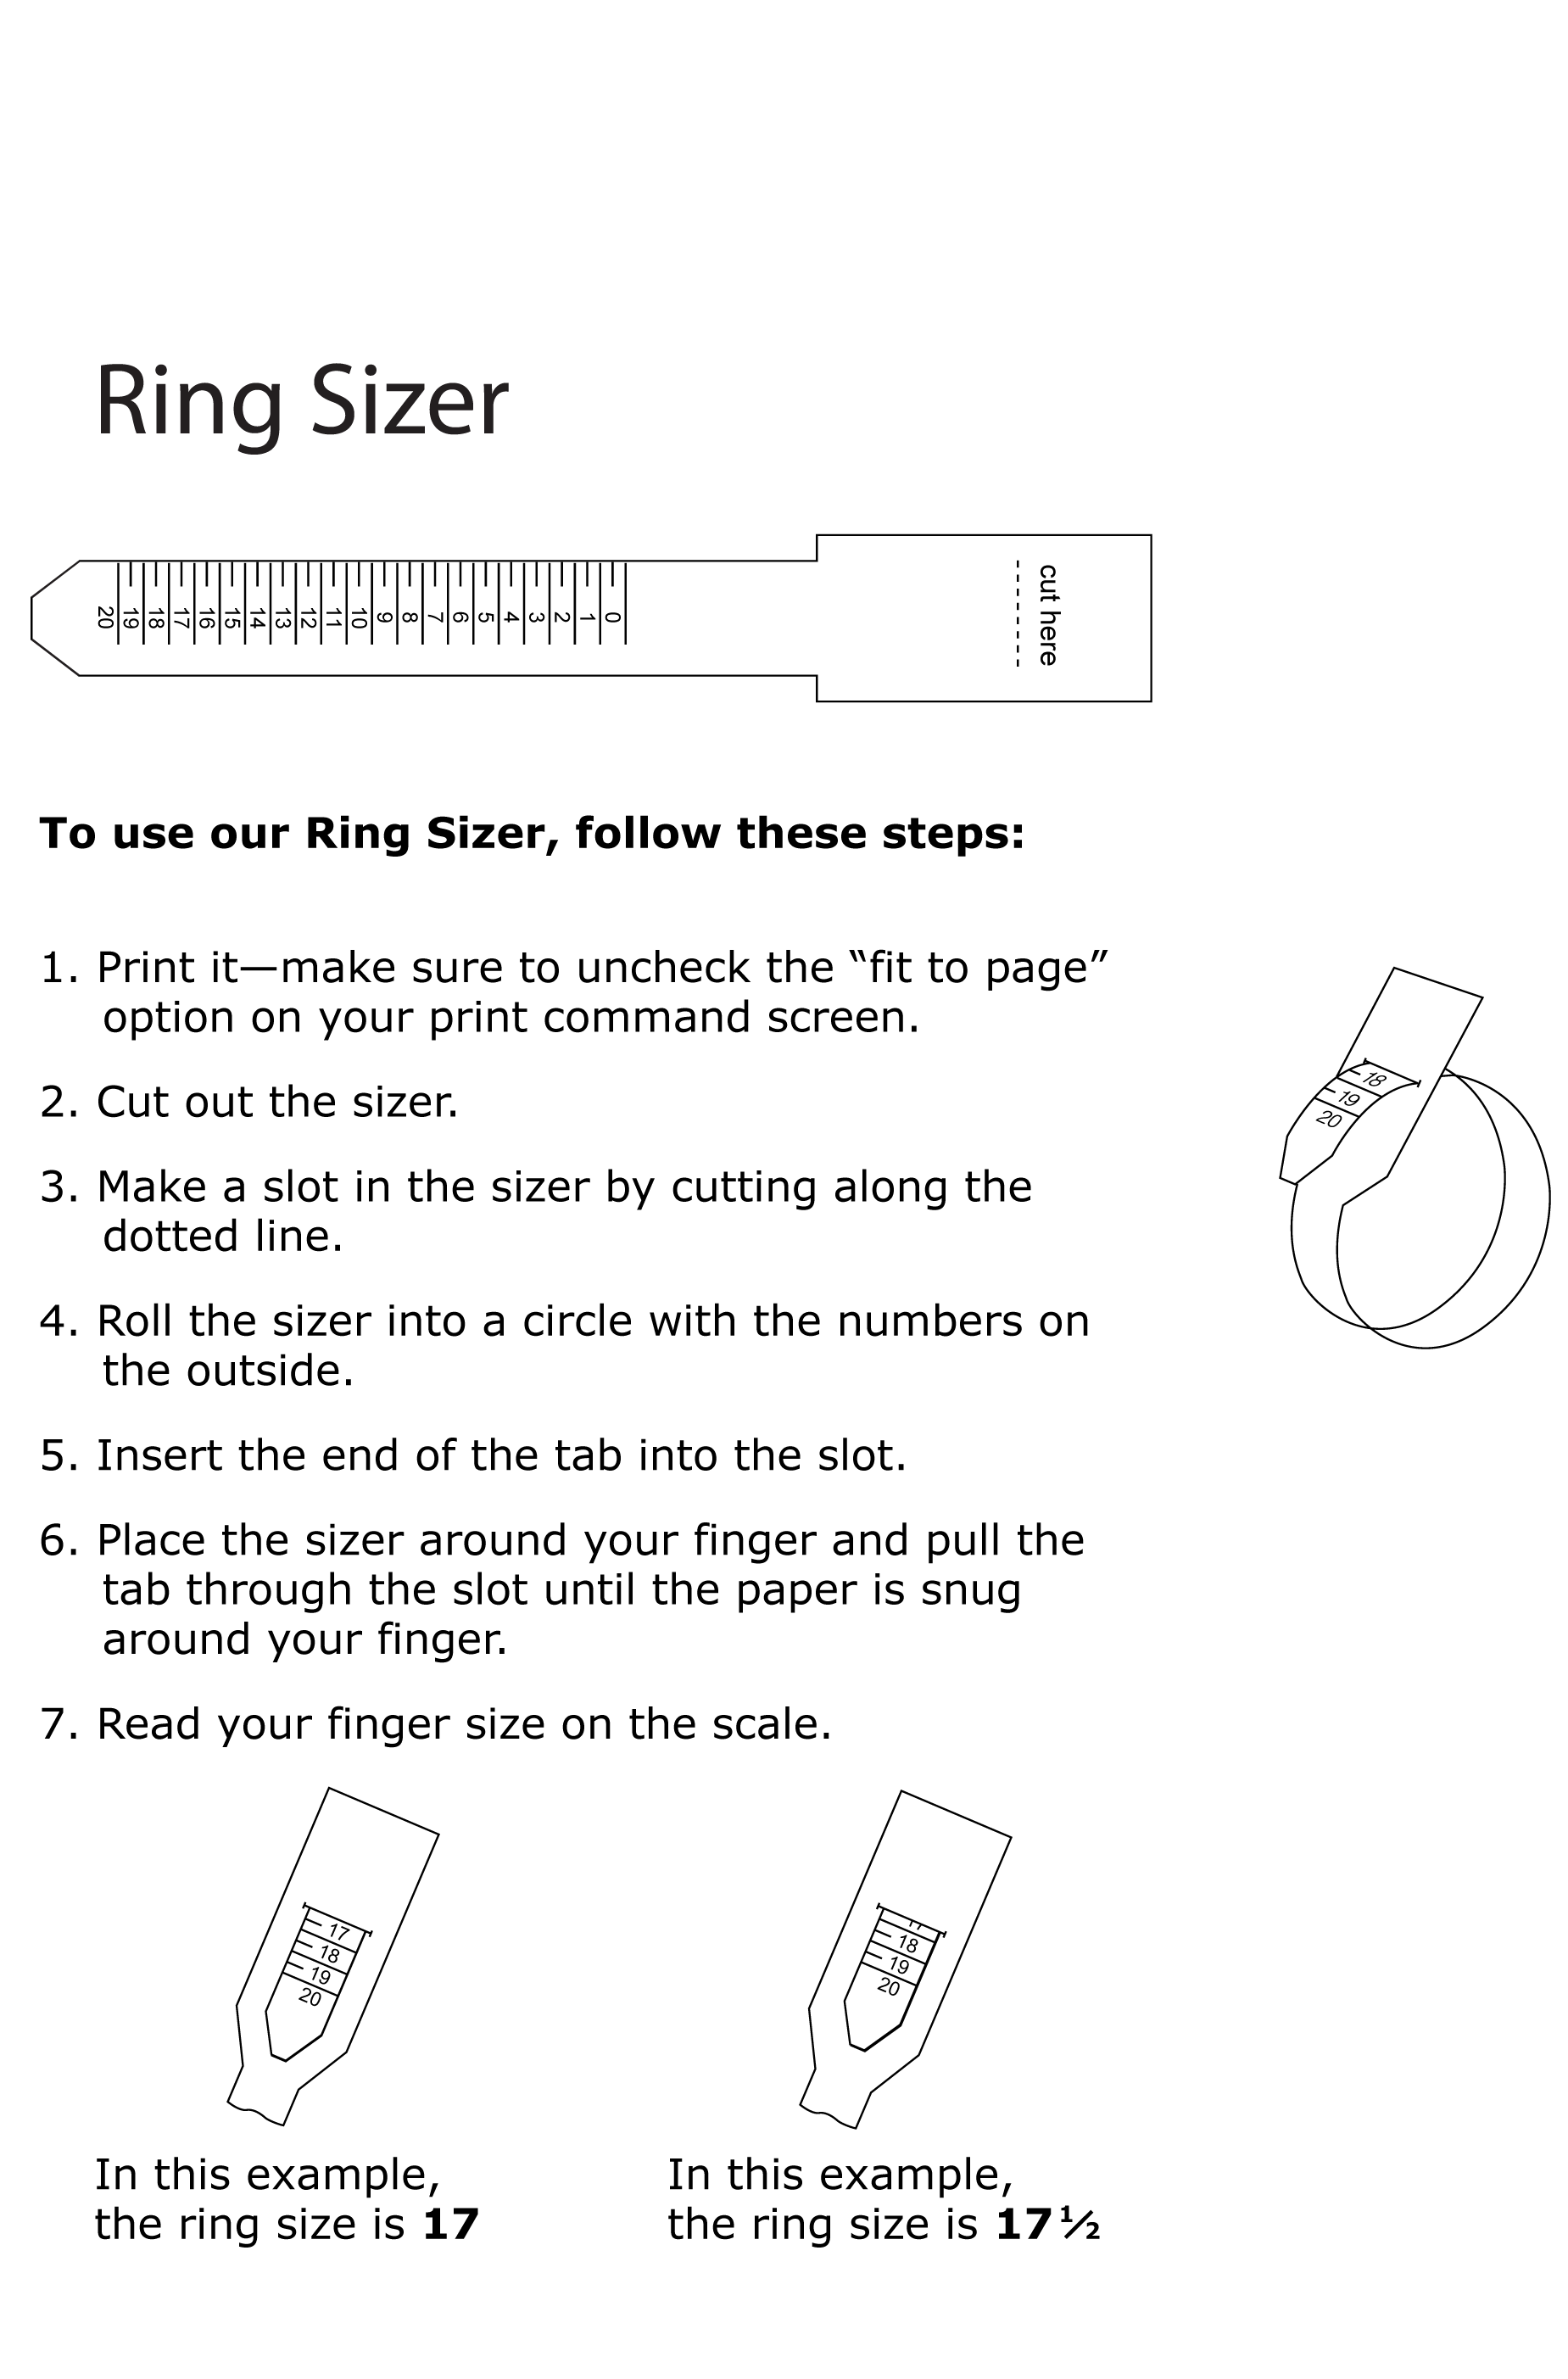 ring-sizer.png